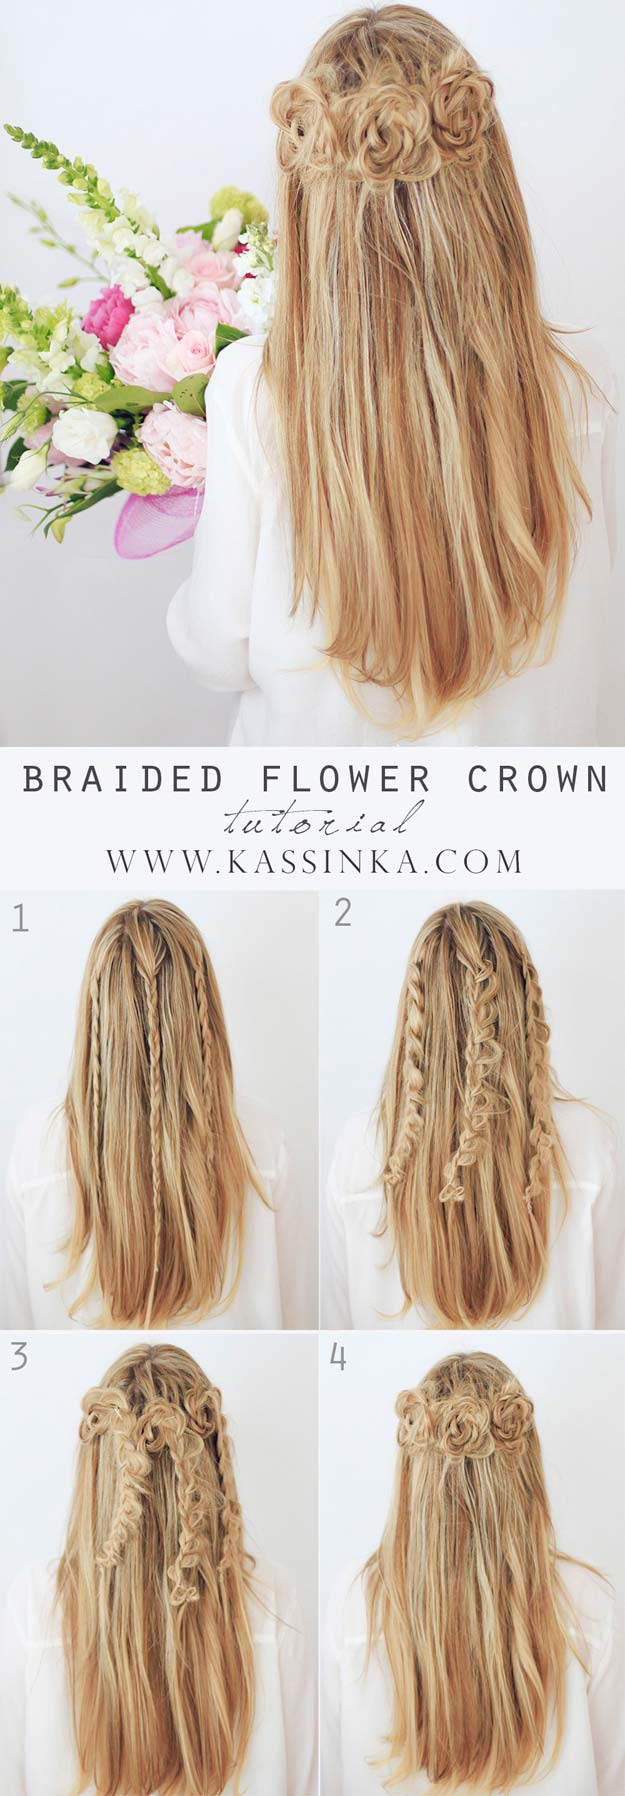 Hairstyles Step By Step braided rose bow hairstyle step by step method Best Hairstyles For Long Hair Braided Flower Crown Step By Step Tutorials For Easy